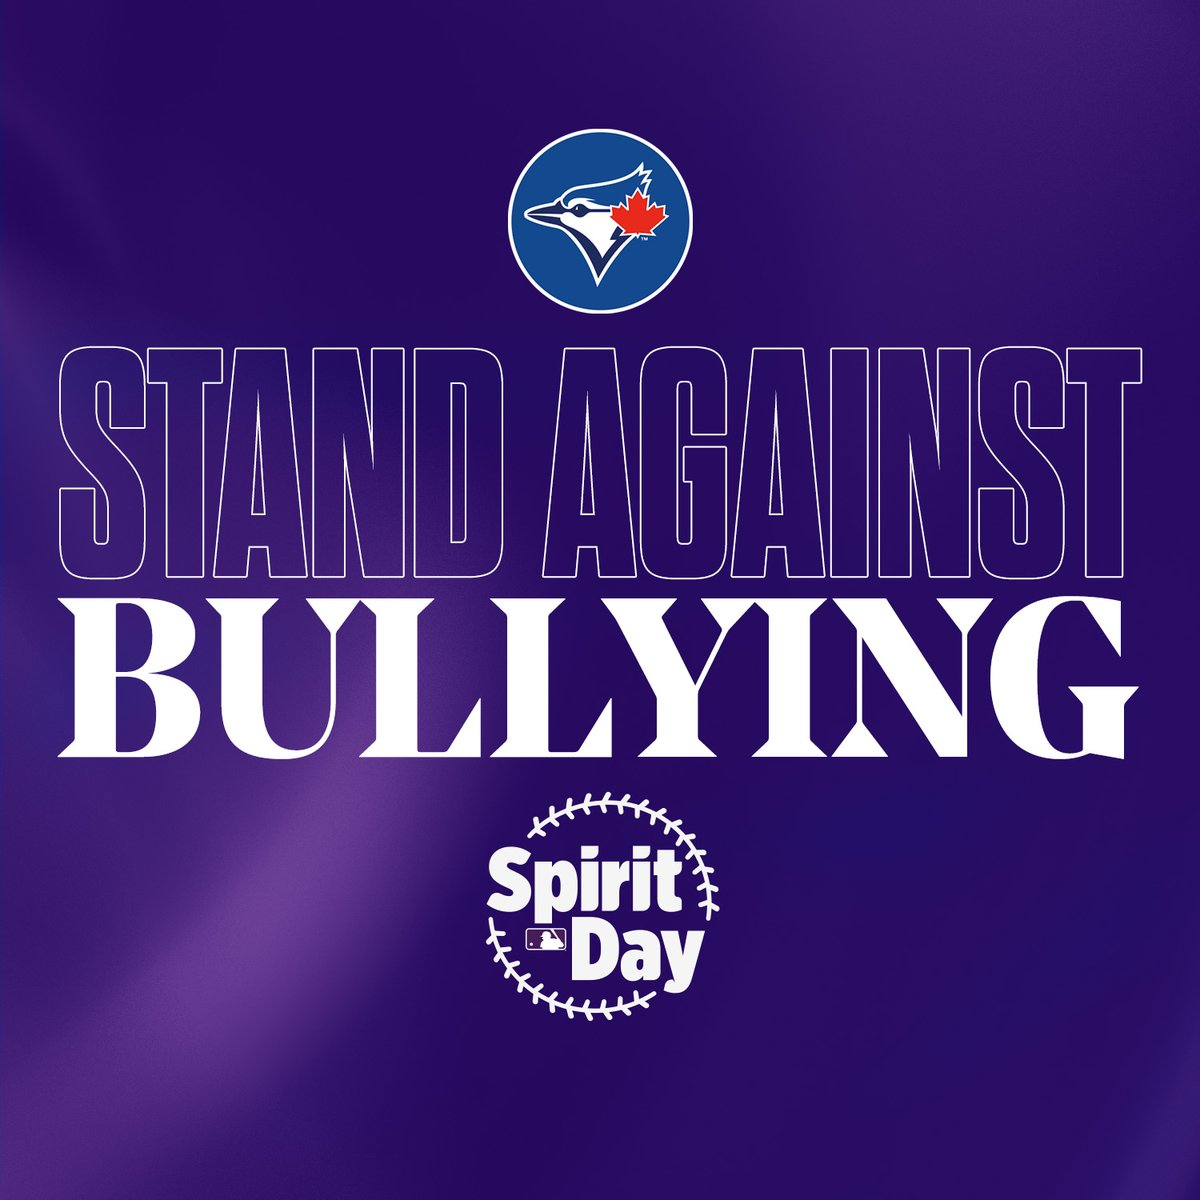 We are proud to join @MLB to take a stand against bullying and show our support for LGBTQ2+ youth. #SpiritDay